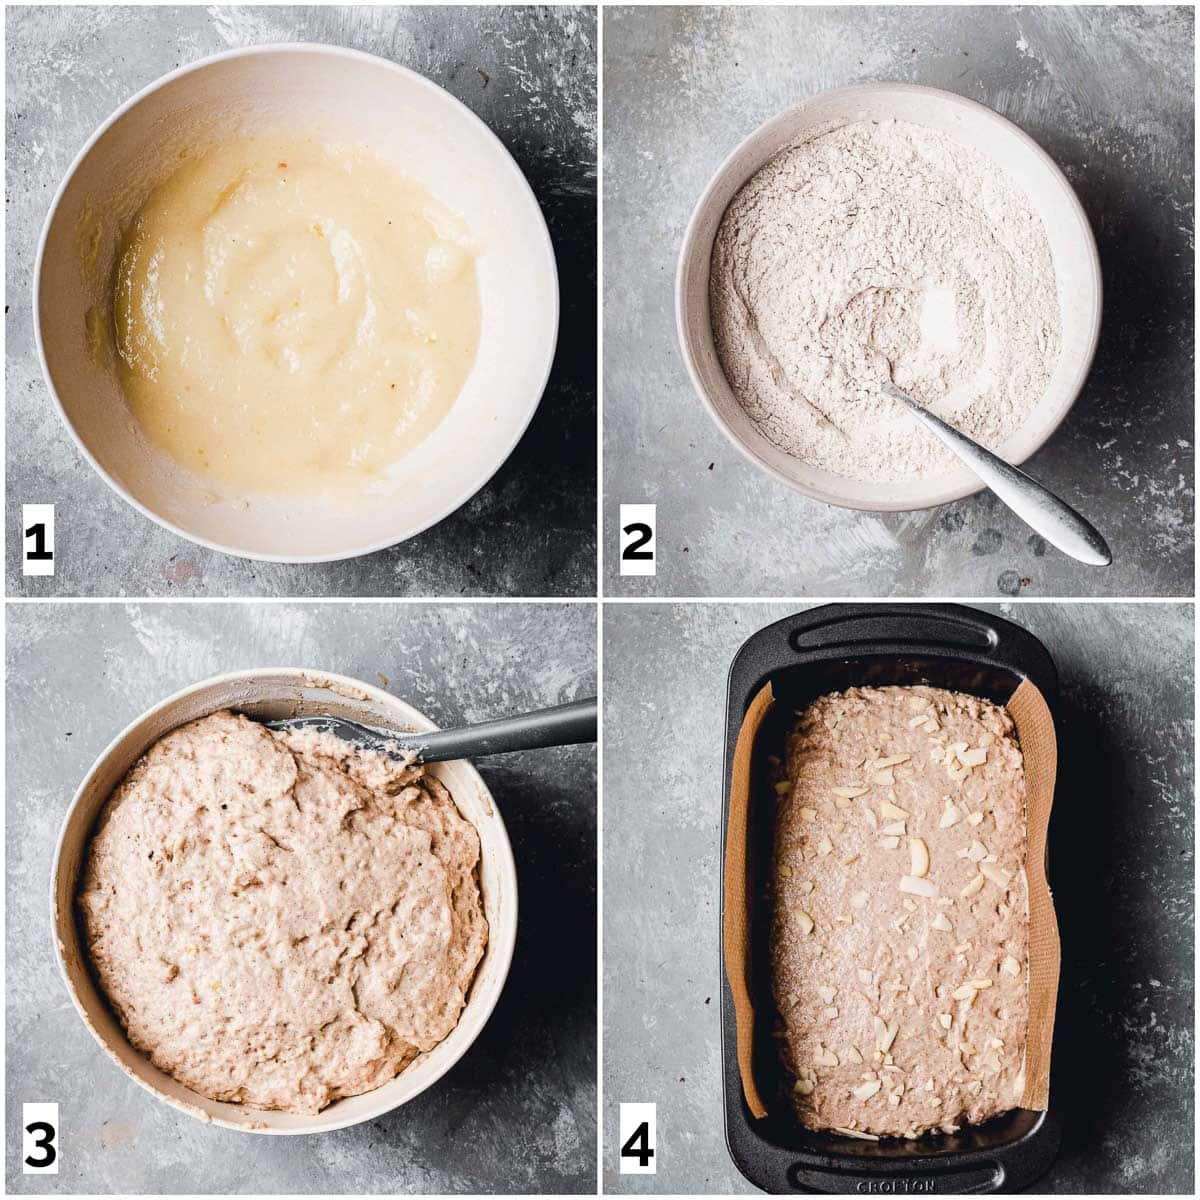 A collage of four images showing the four steps in making cake.